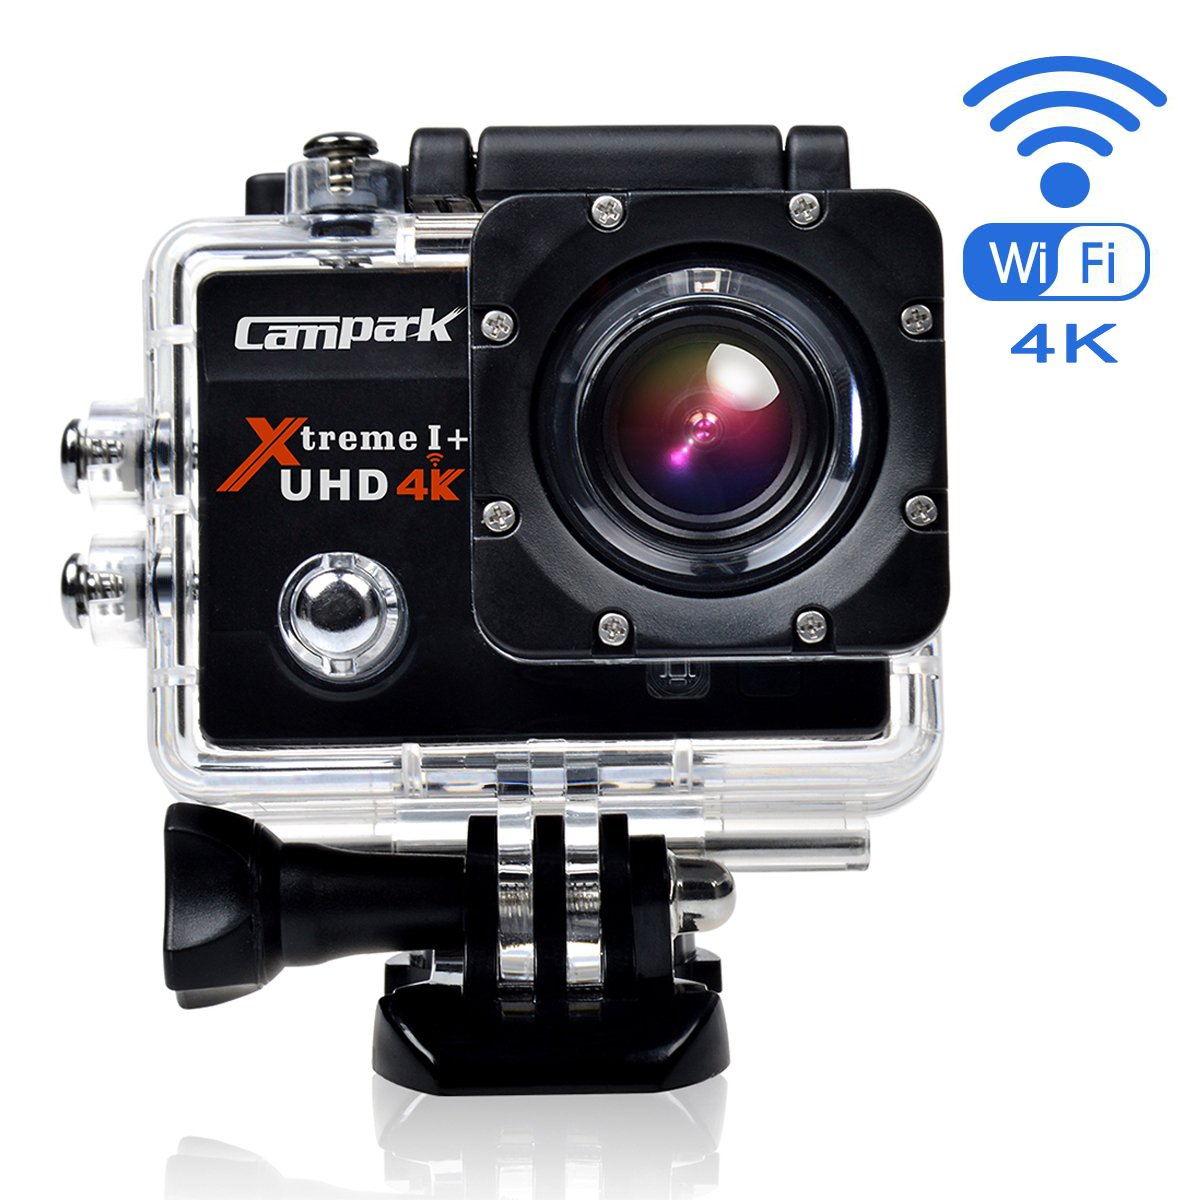 xtreme uhd 4k wifi ultra hd waterproof sports action camera time lapse and slow. Black Bedroom Furniture Sets. Home Design Ideas